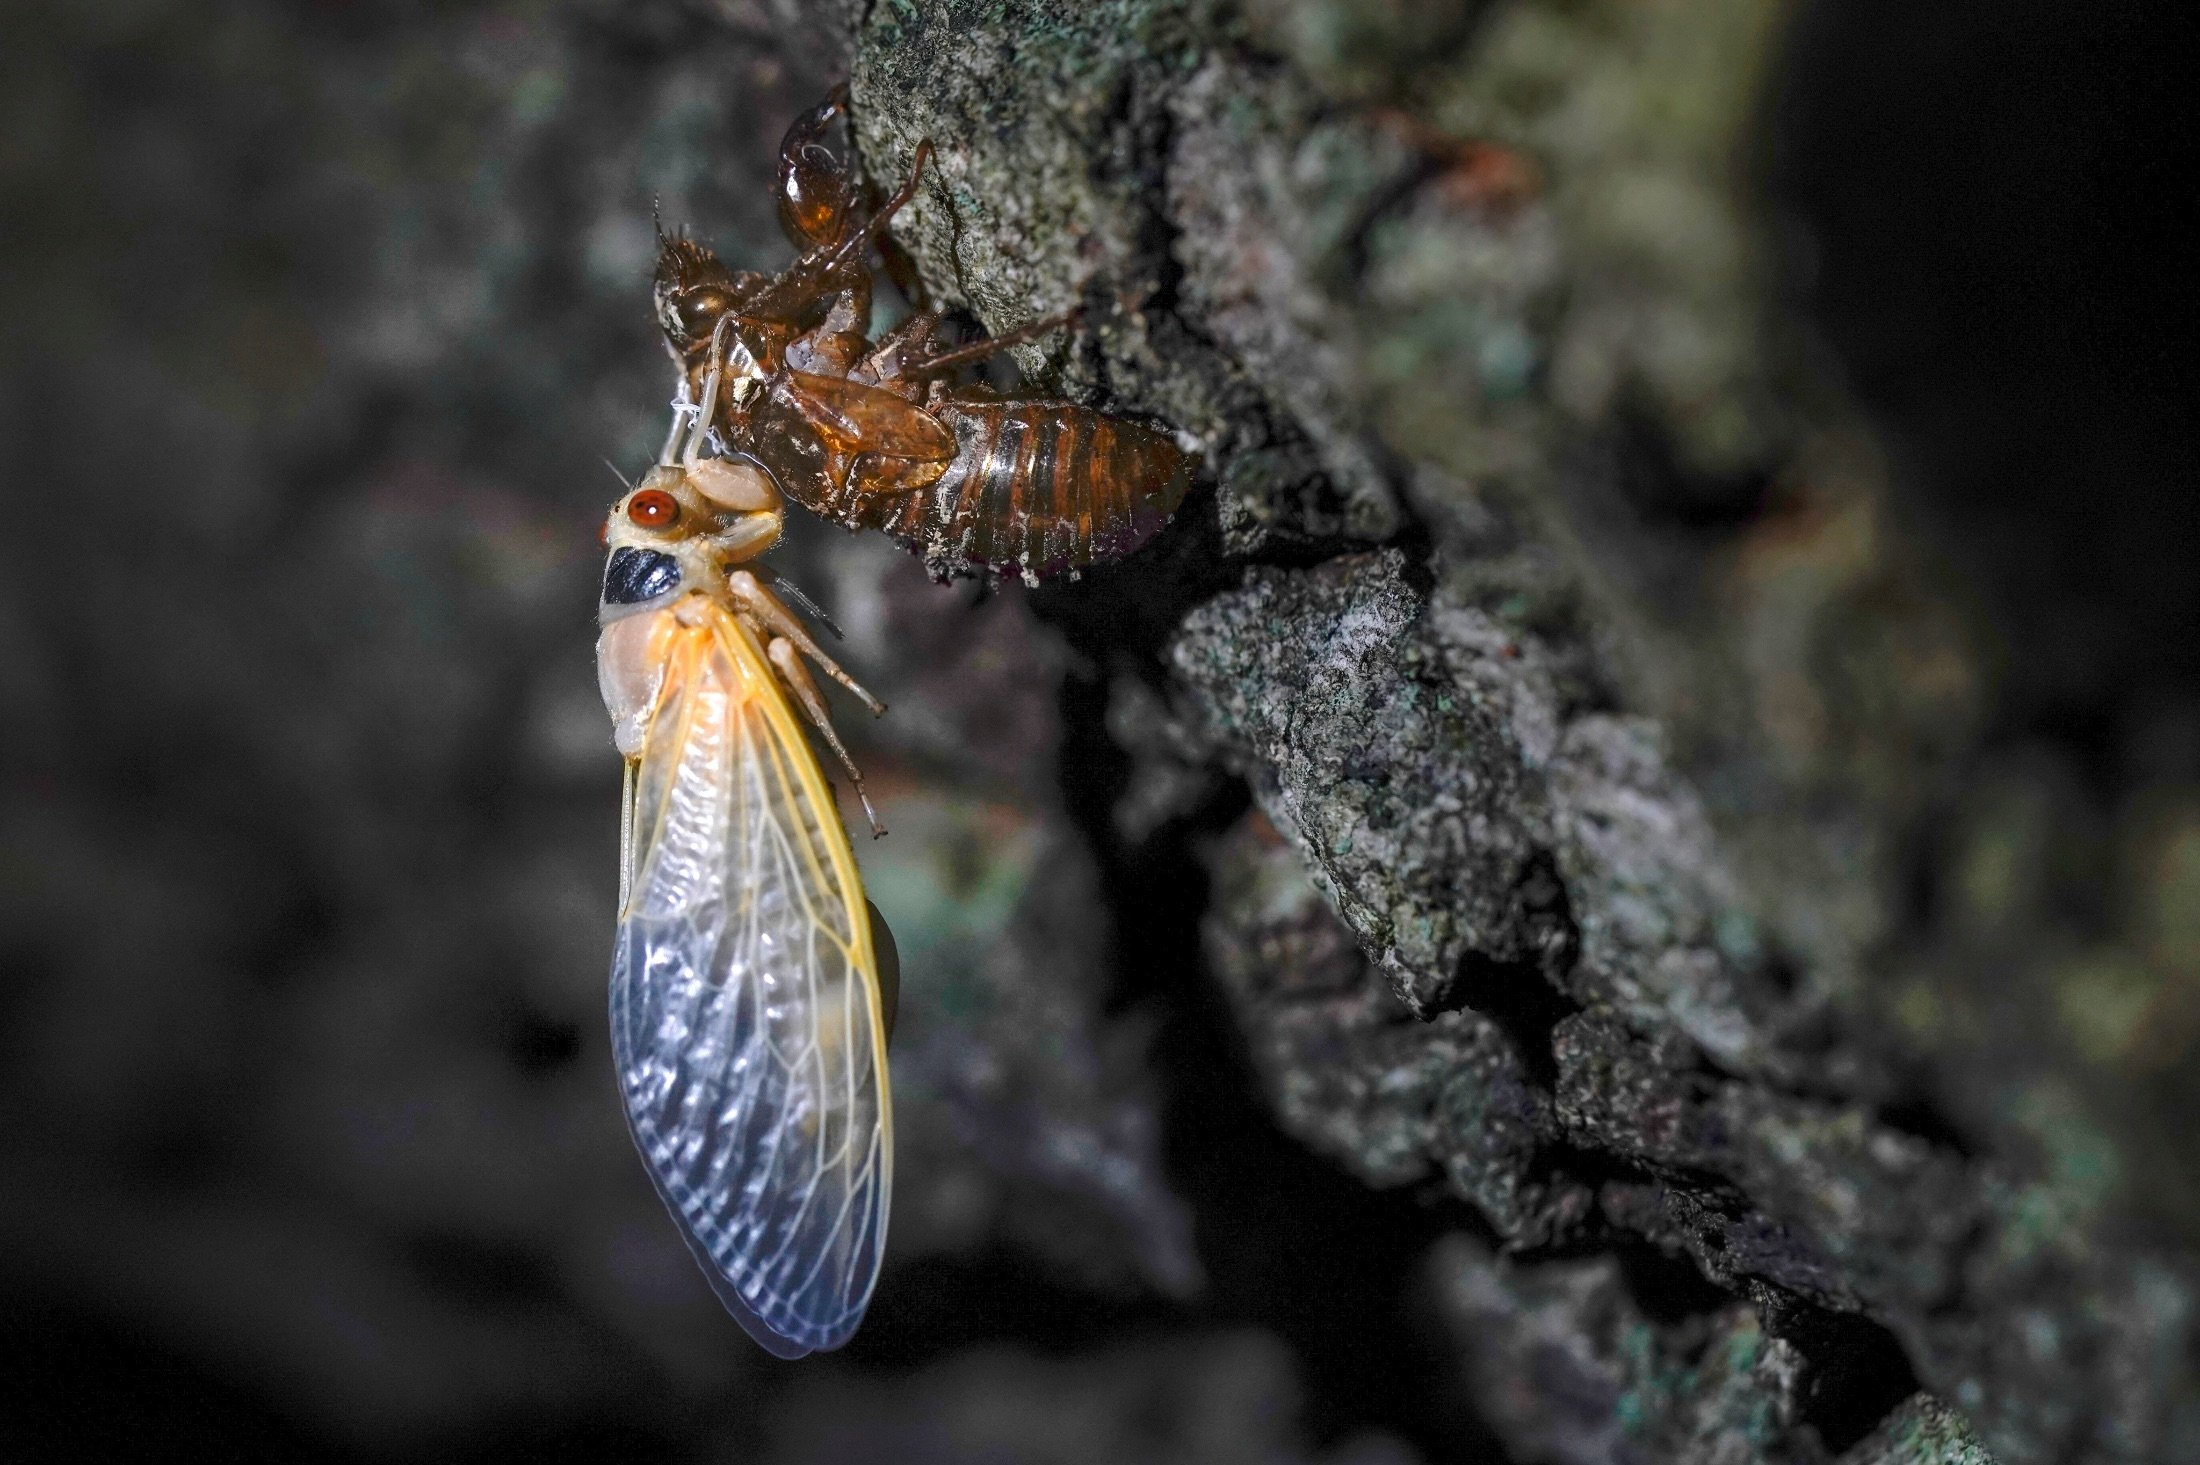 An adult cicada rests after shedding its nymphal skin, on the bark of an an oak tree, on the University of Maryland campus in College Park, Maryland, U.S., May 5, 2021. (AP Photo)